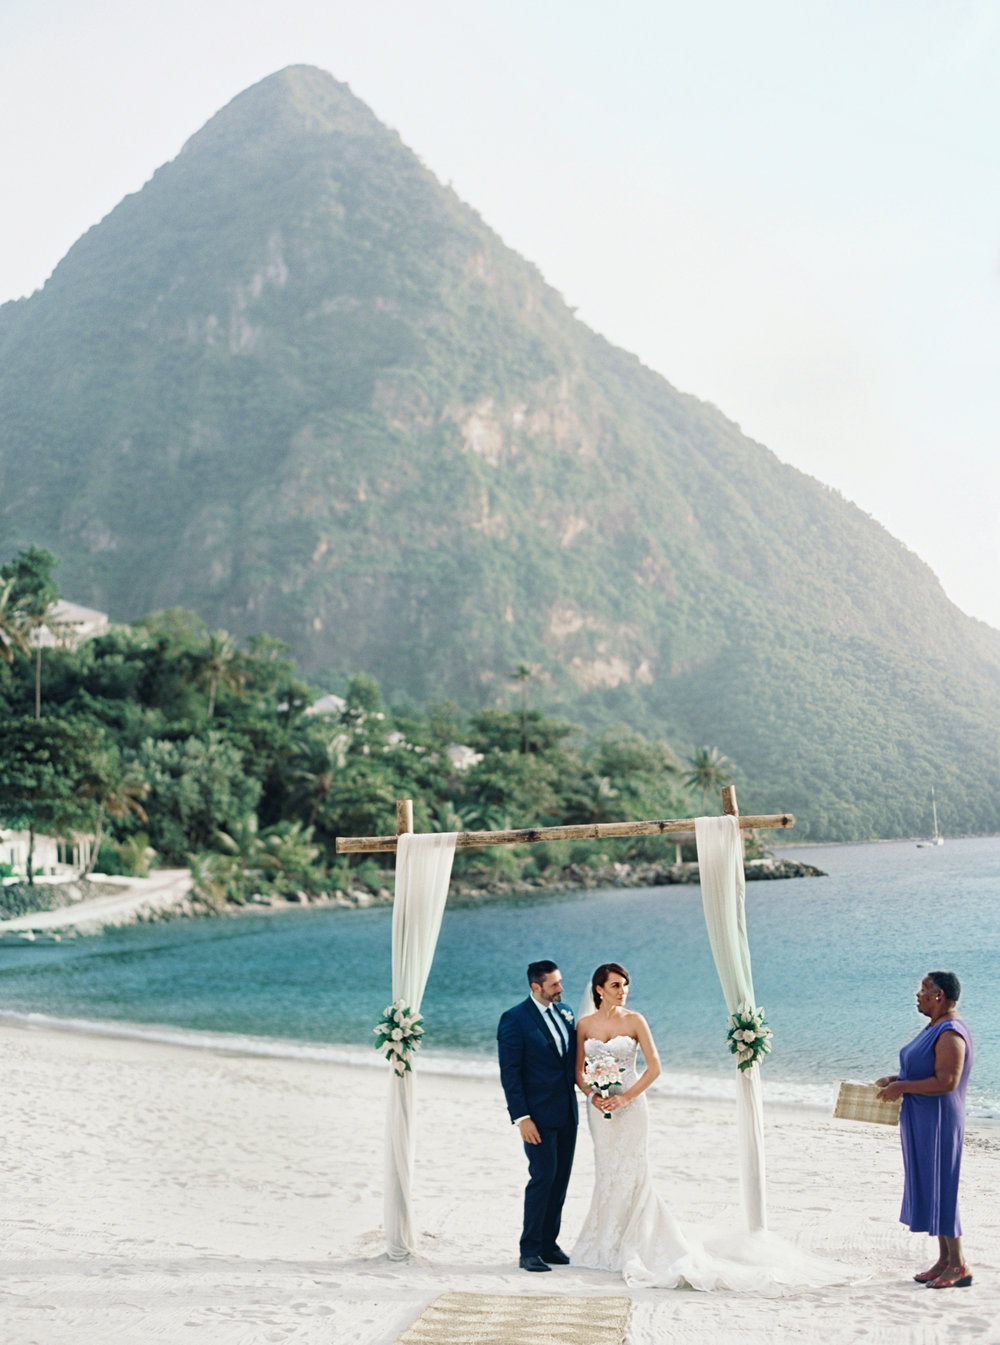 075Delmary's & Daniel : ELOPEMENT : ST. LUCIA : CARIBBEAN : PHOTO & VIDEO : DESTINATION : OUTLIVE CREATIVE : 2016 .jpg